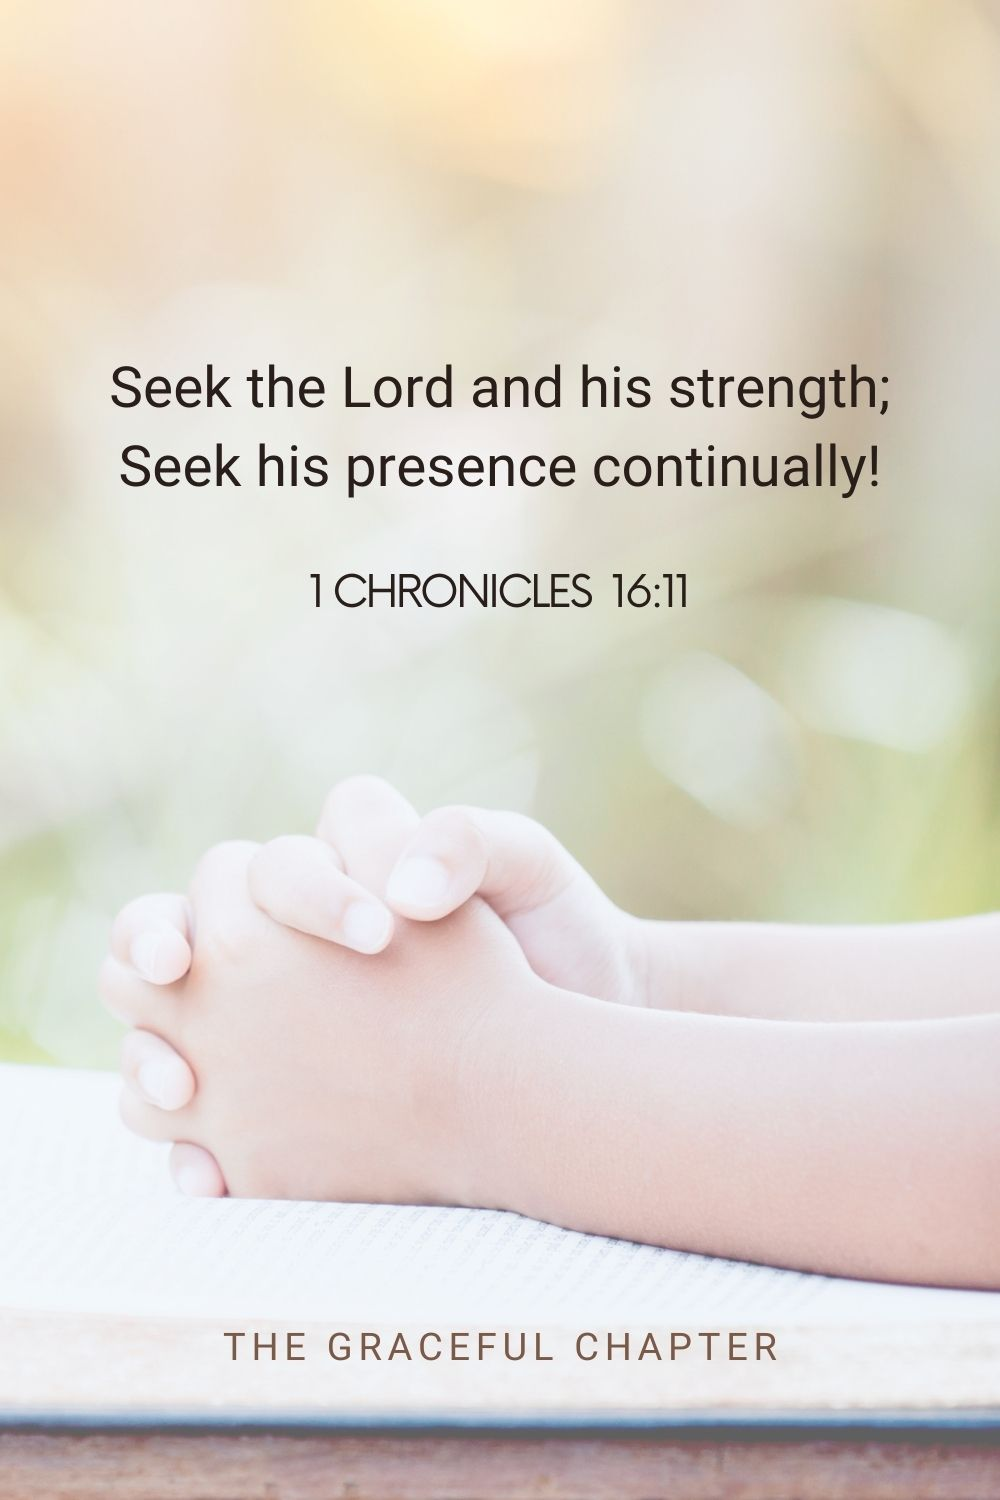 Seek the Lord and his strength; seek his presence continually! 1 Chronicles 16:11